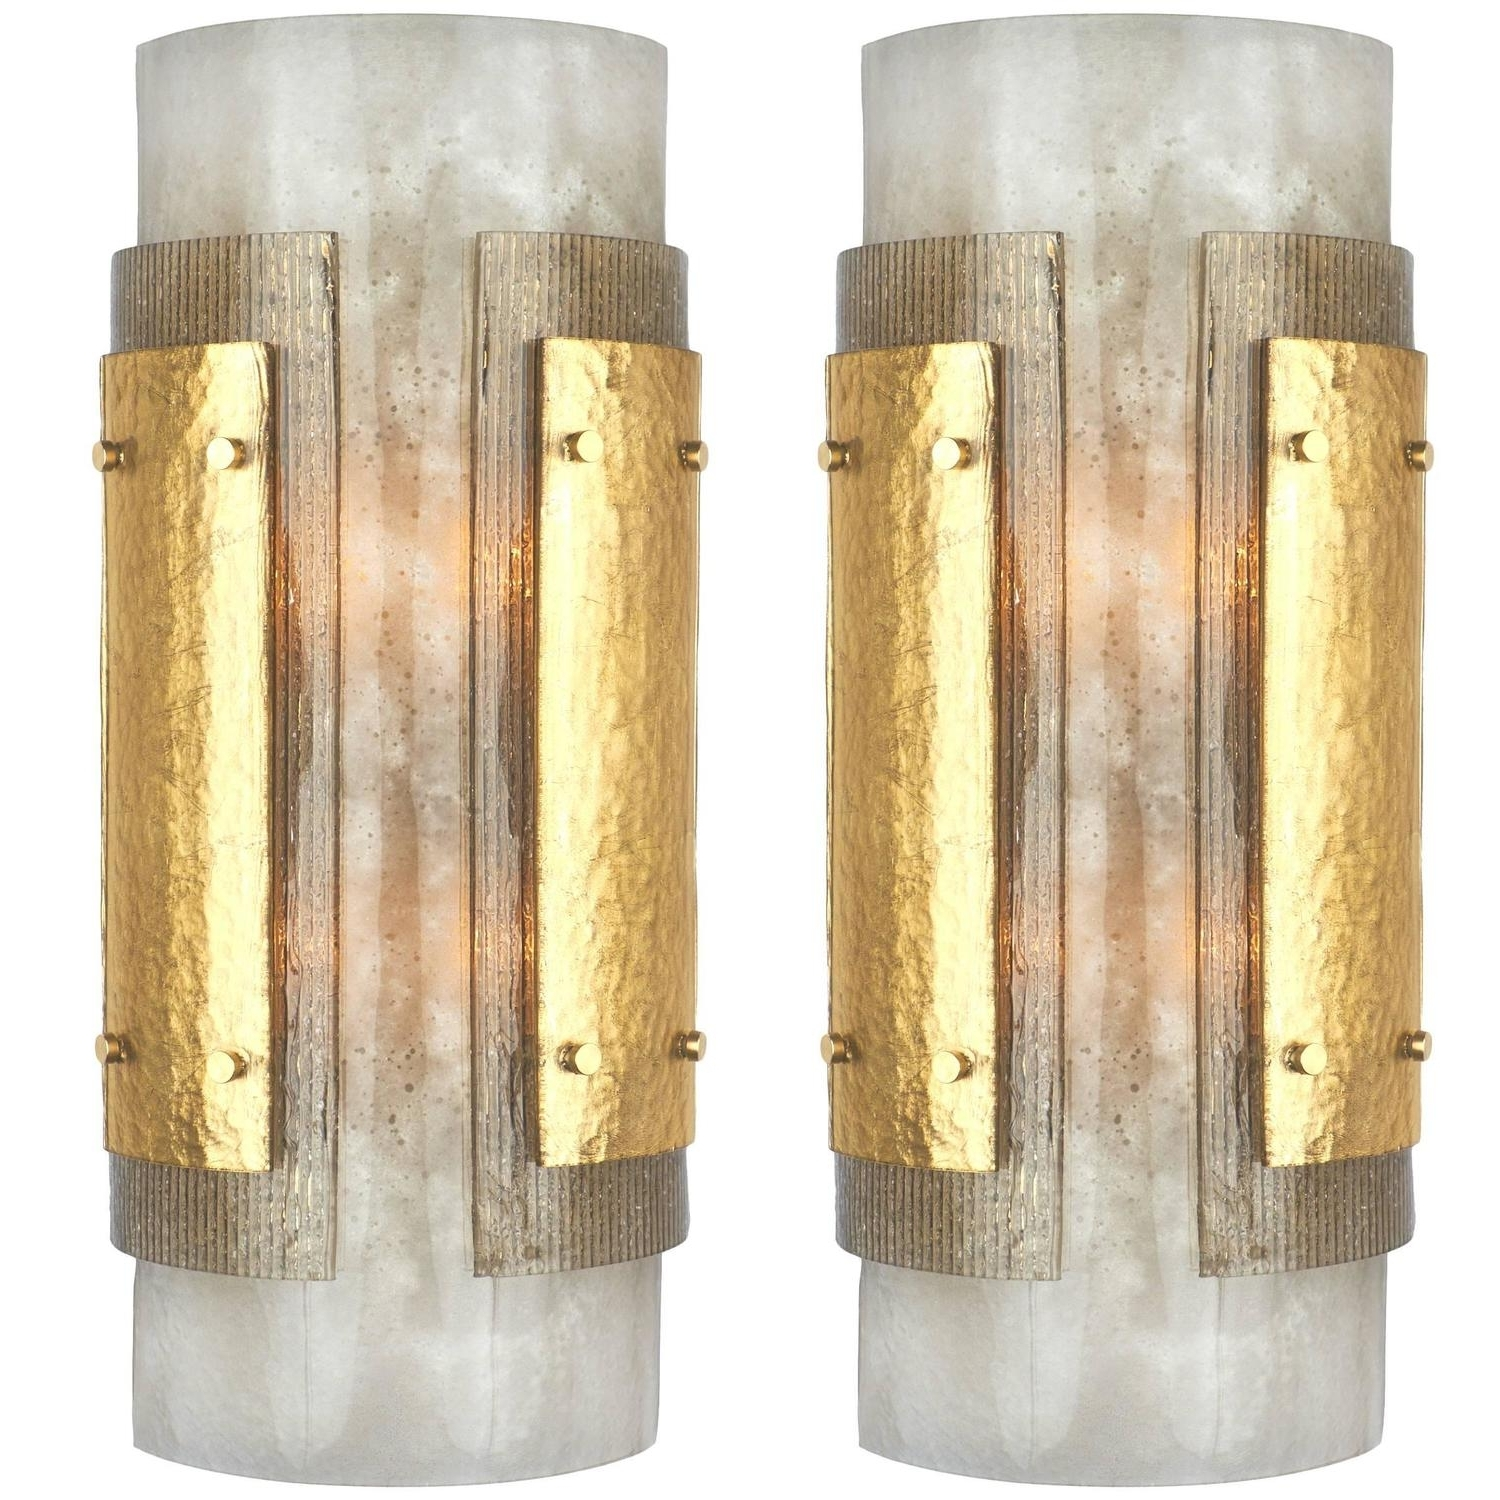 Art Deco Wall Sconces For Well Known Italian Art Deco Murano Glass Wall Sconces (View 4 of 20)